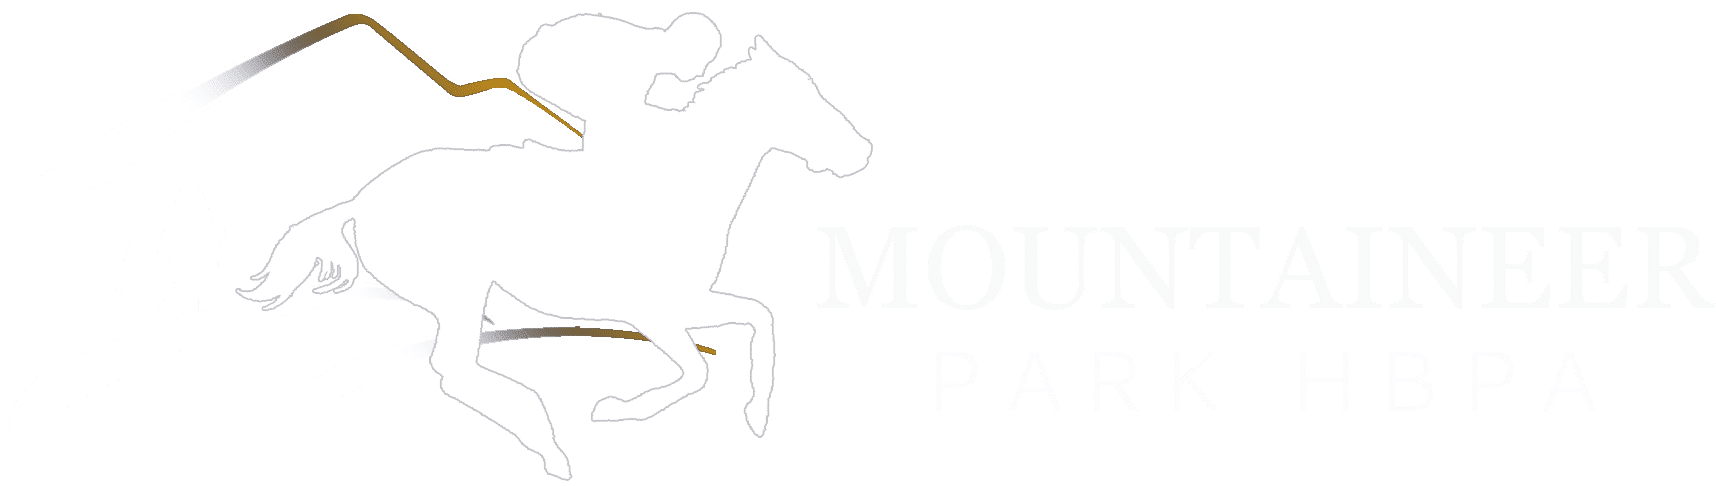 Mountaineer Park HBPA